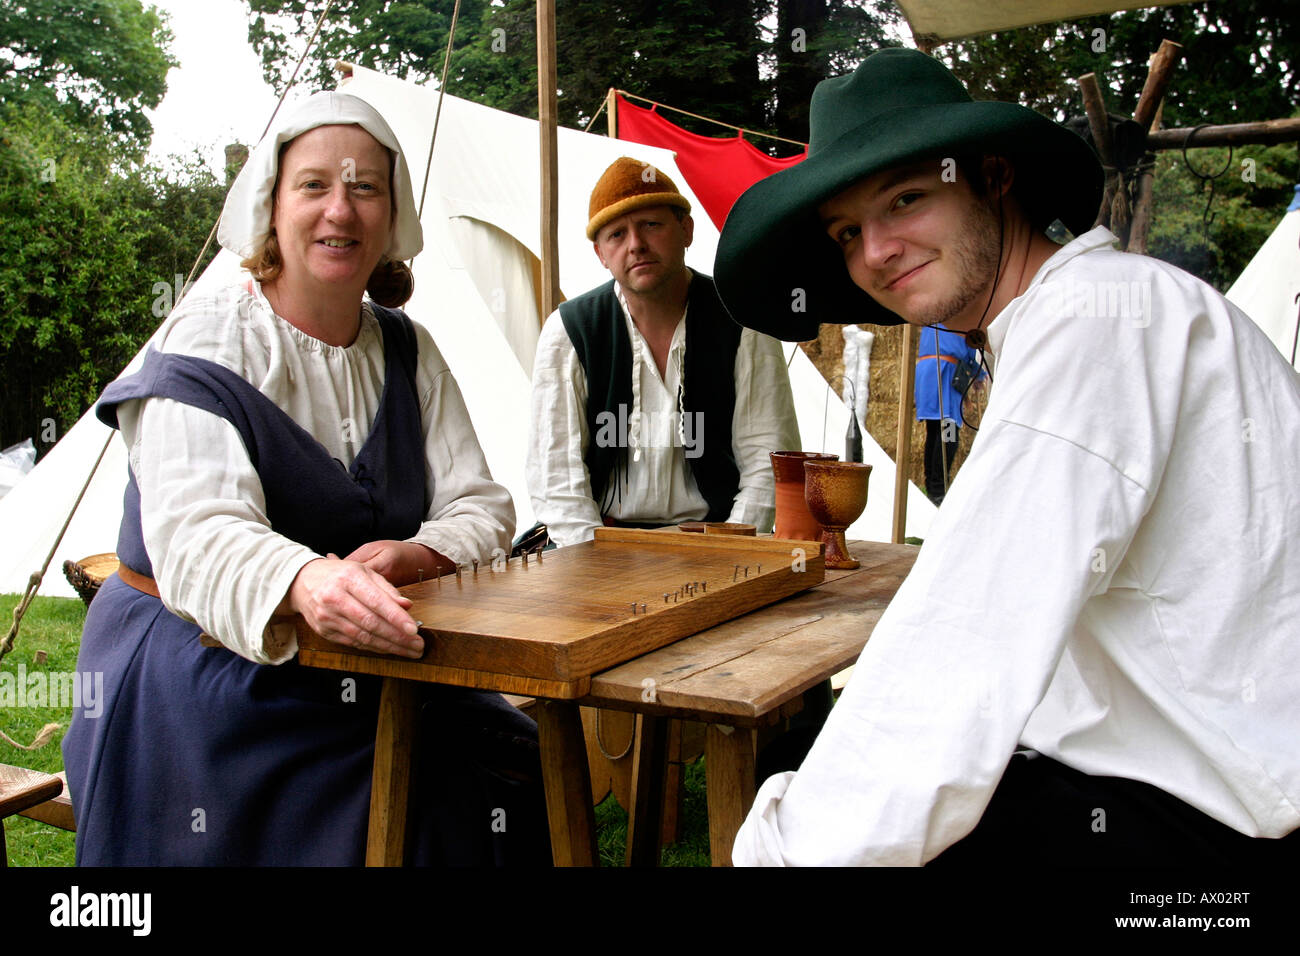 UK Worcestershire Evesham medieval fair people in costume playing shove groat board game - Stock Image